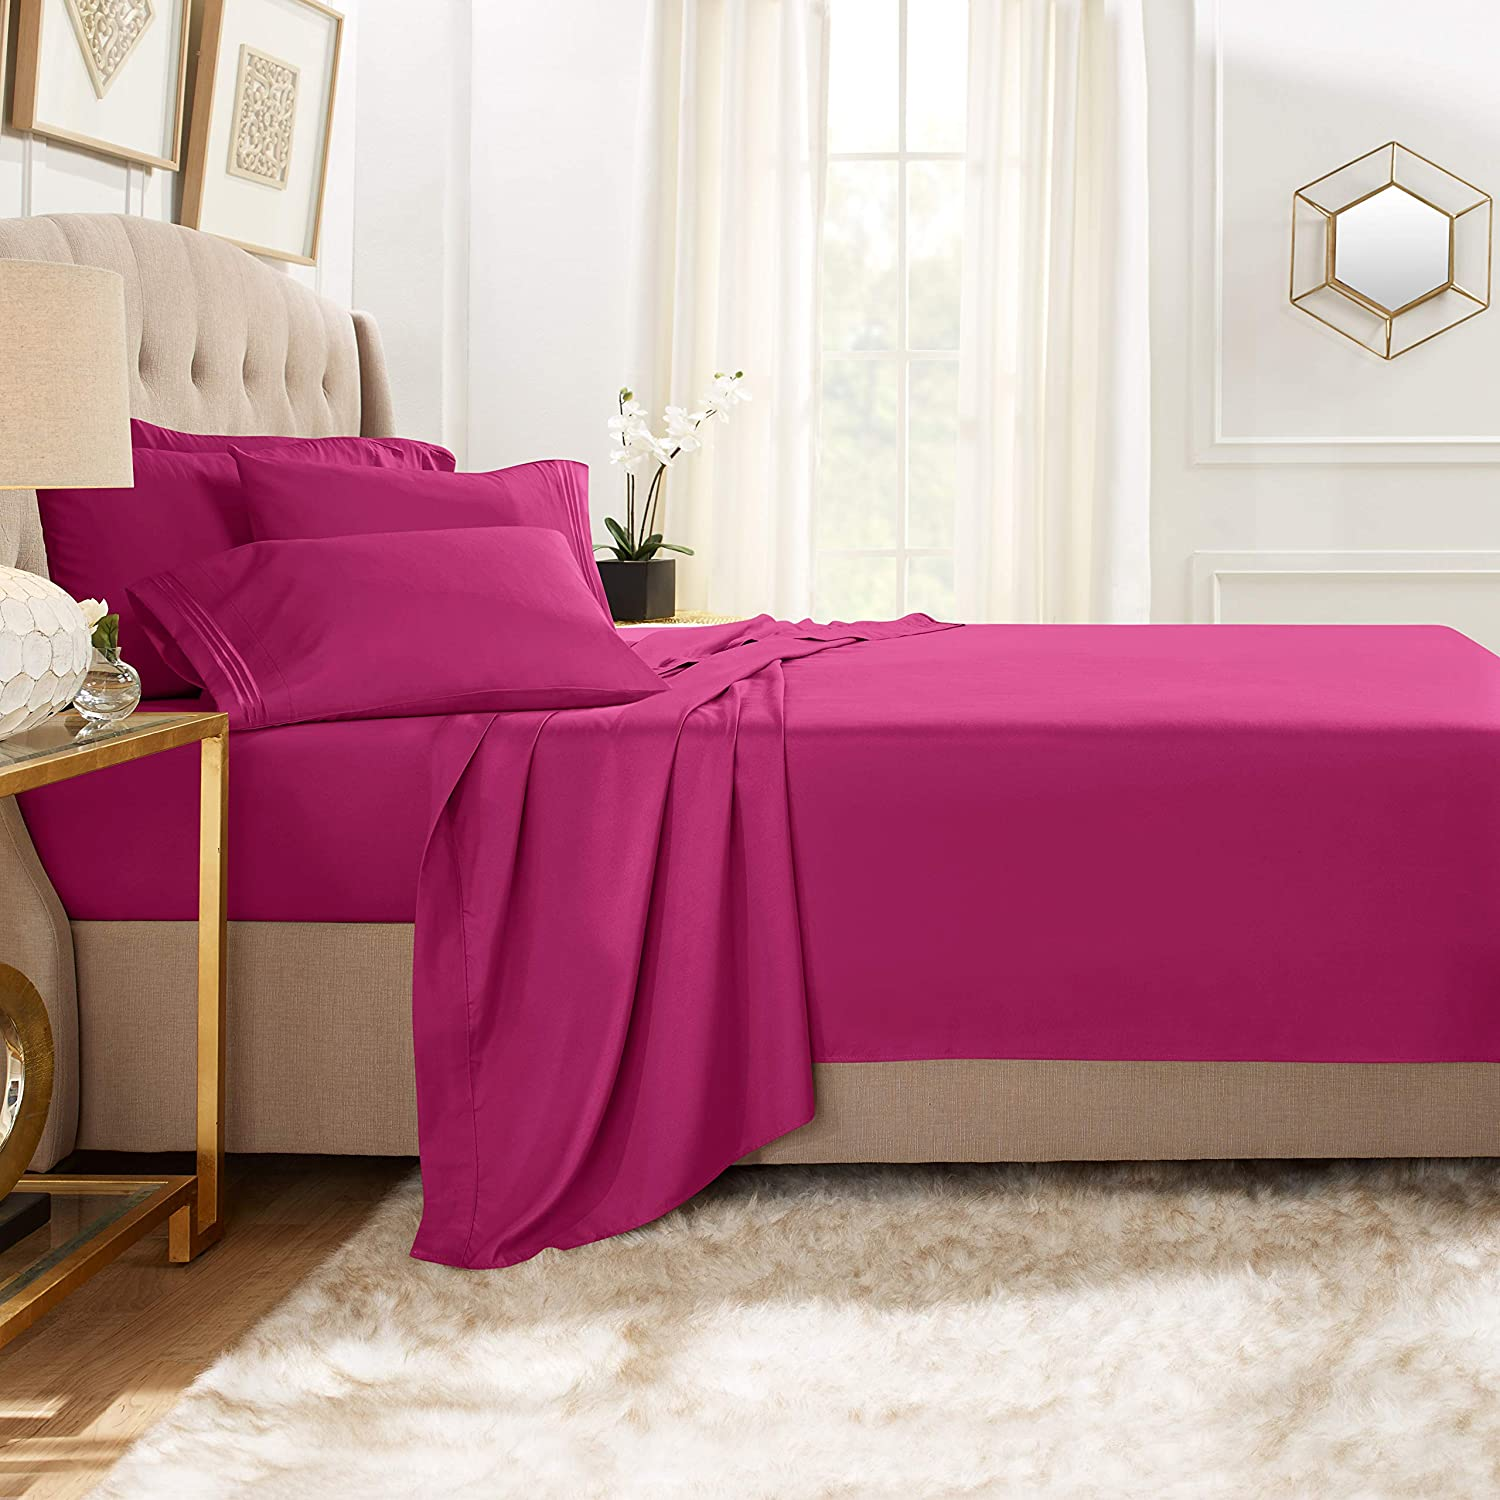 Clara Clark Premier 1800 Collection Bed Sheet Set with Extra Pillowcases Wrinkle, Fade & Stain Resistant, Queen, Magenta